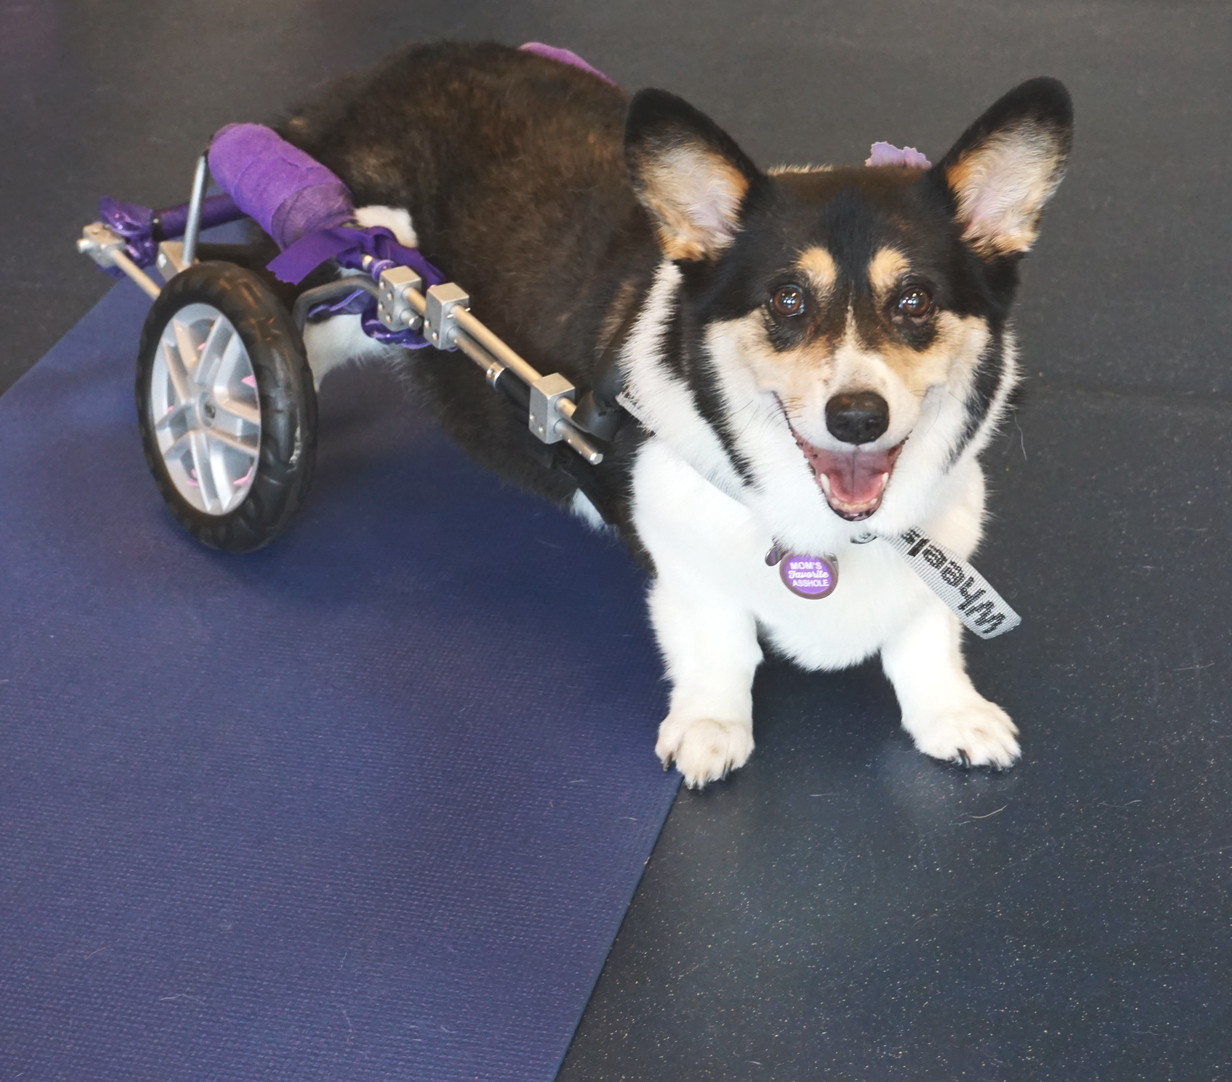 Pembroke Welsh Corgi Tilly diagnosed with Degenerative Myelopathy (DM) is all smiles in her custom cart provided by BWF.